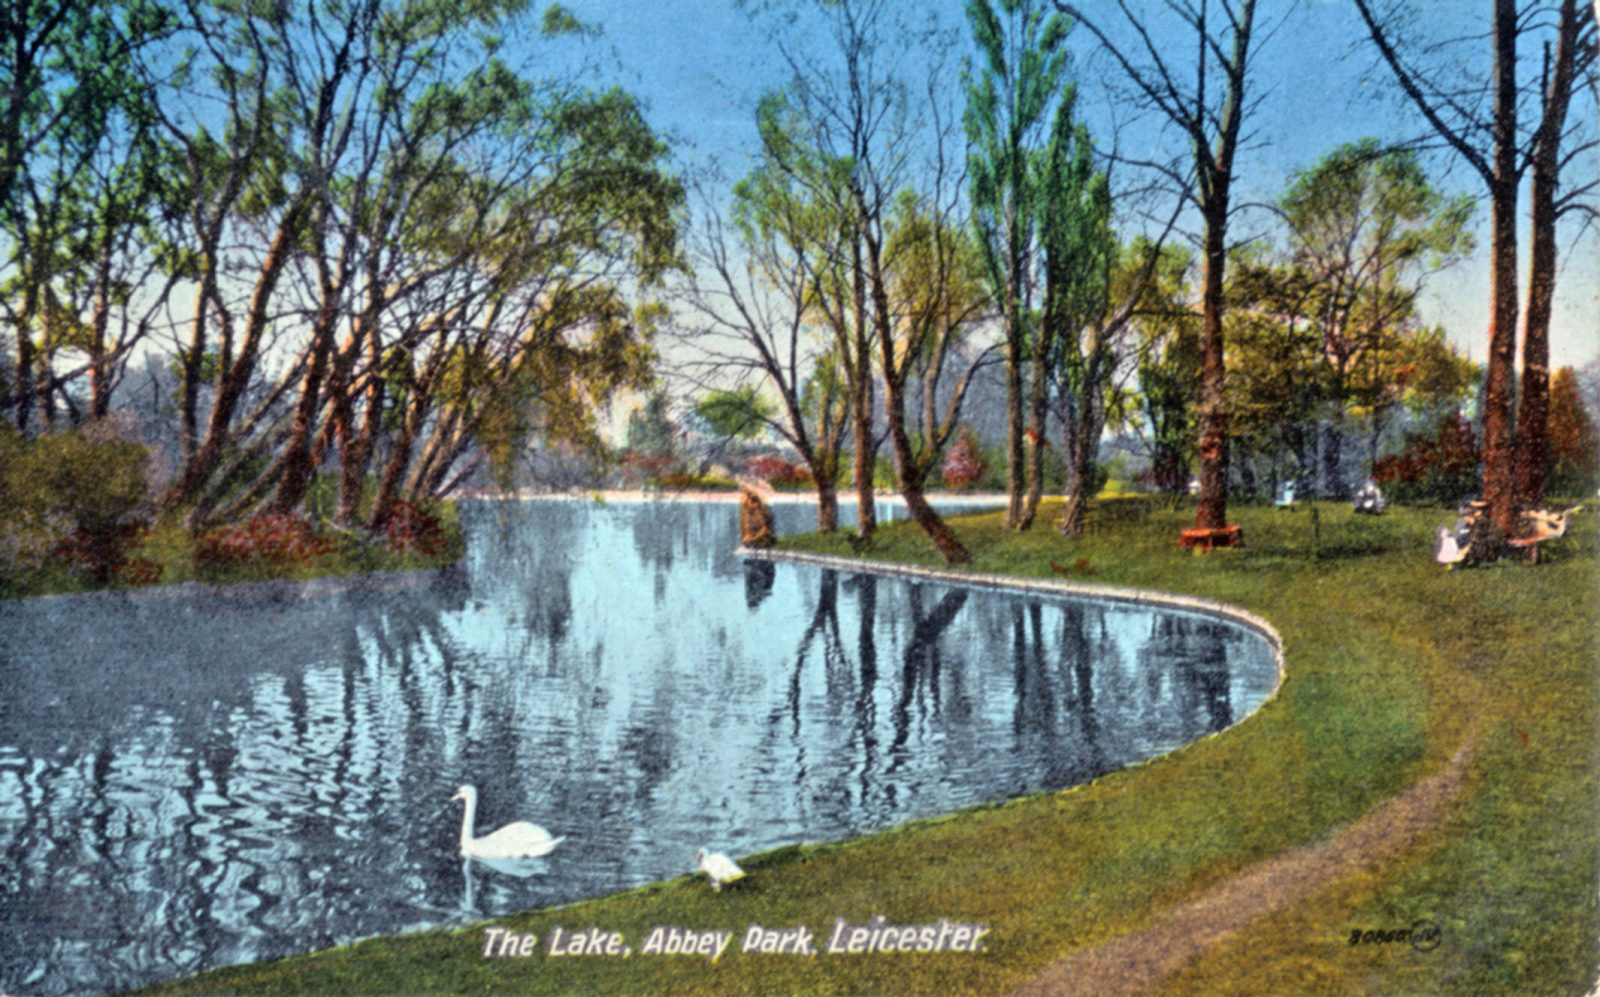 Abbey Park, Leicester. 1901-1920: The Lake. (File:1281)